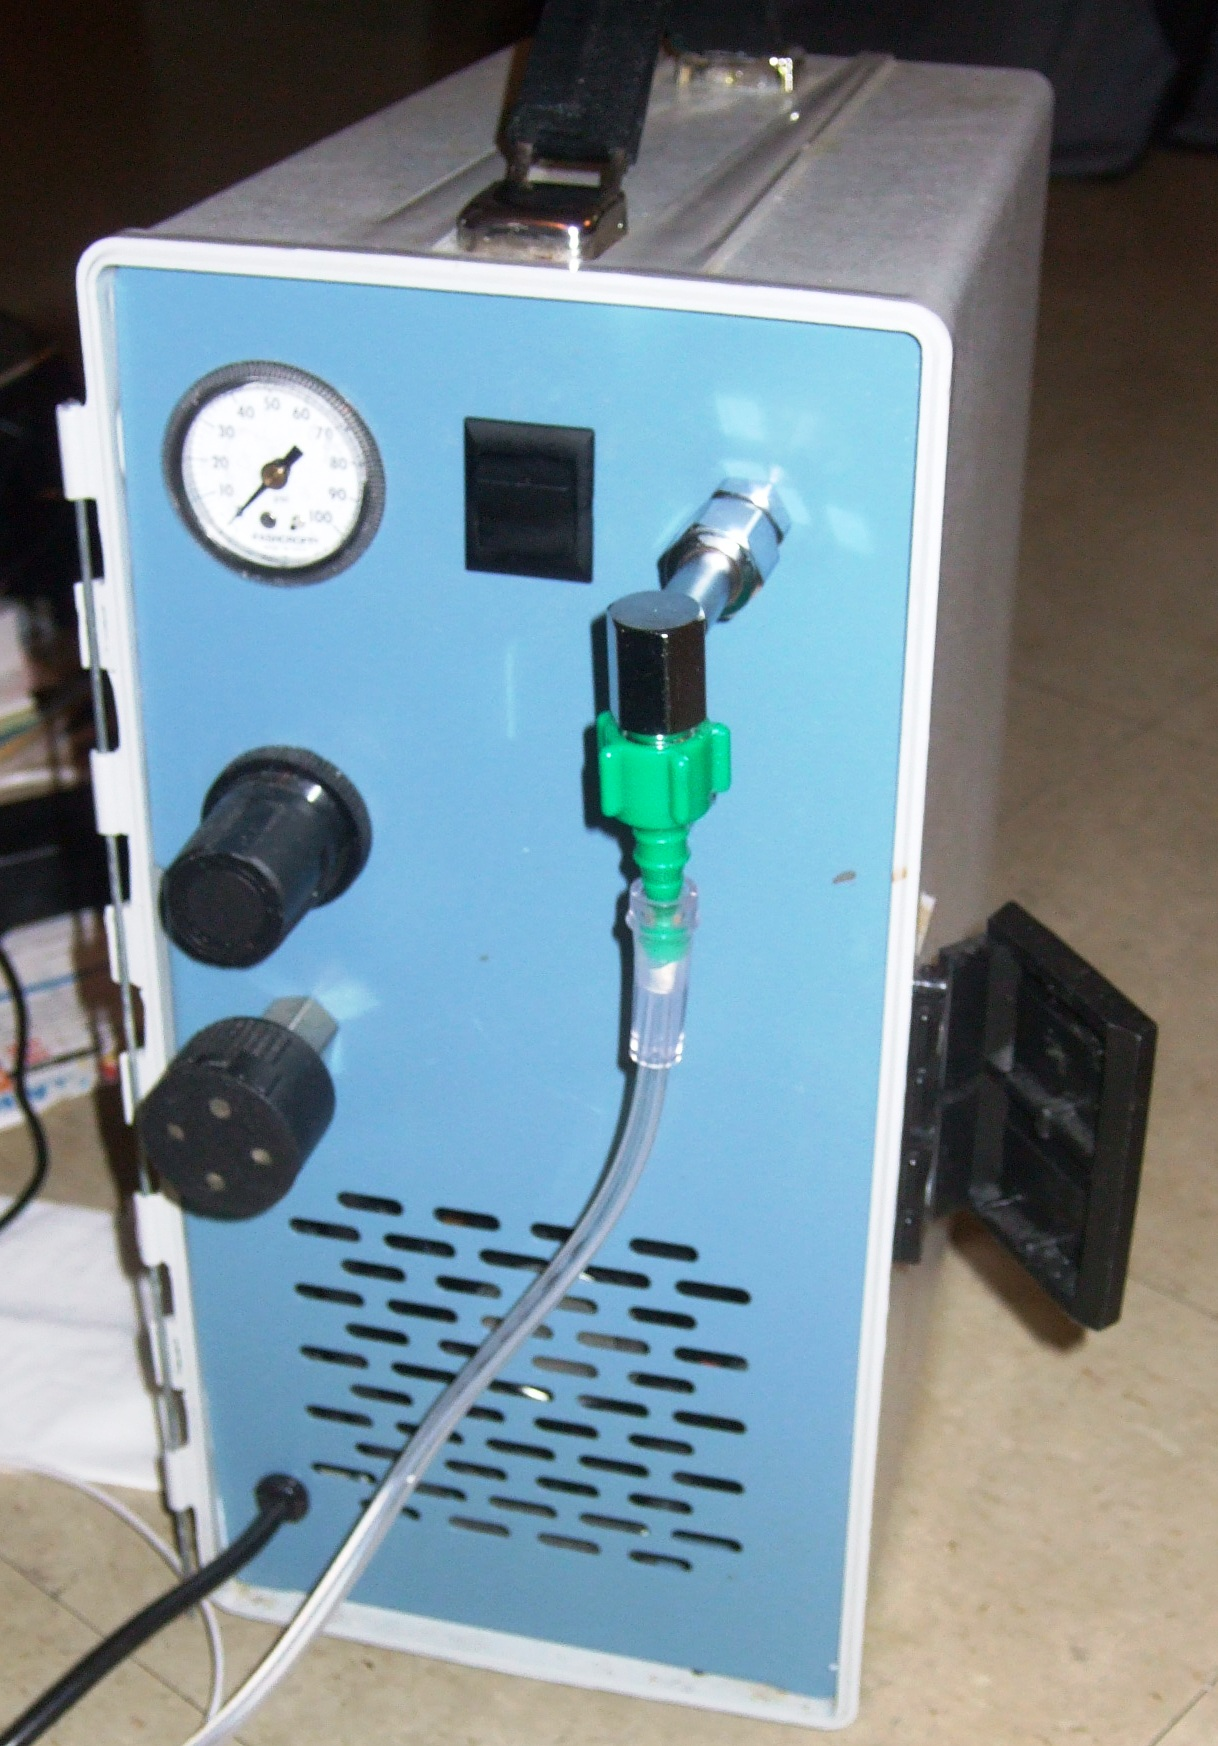 How To Use An Air Compressor >> My Medical Stuff!